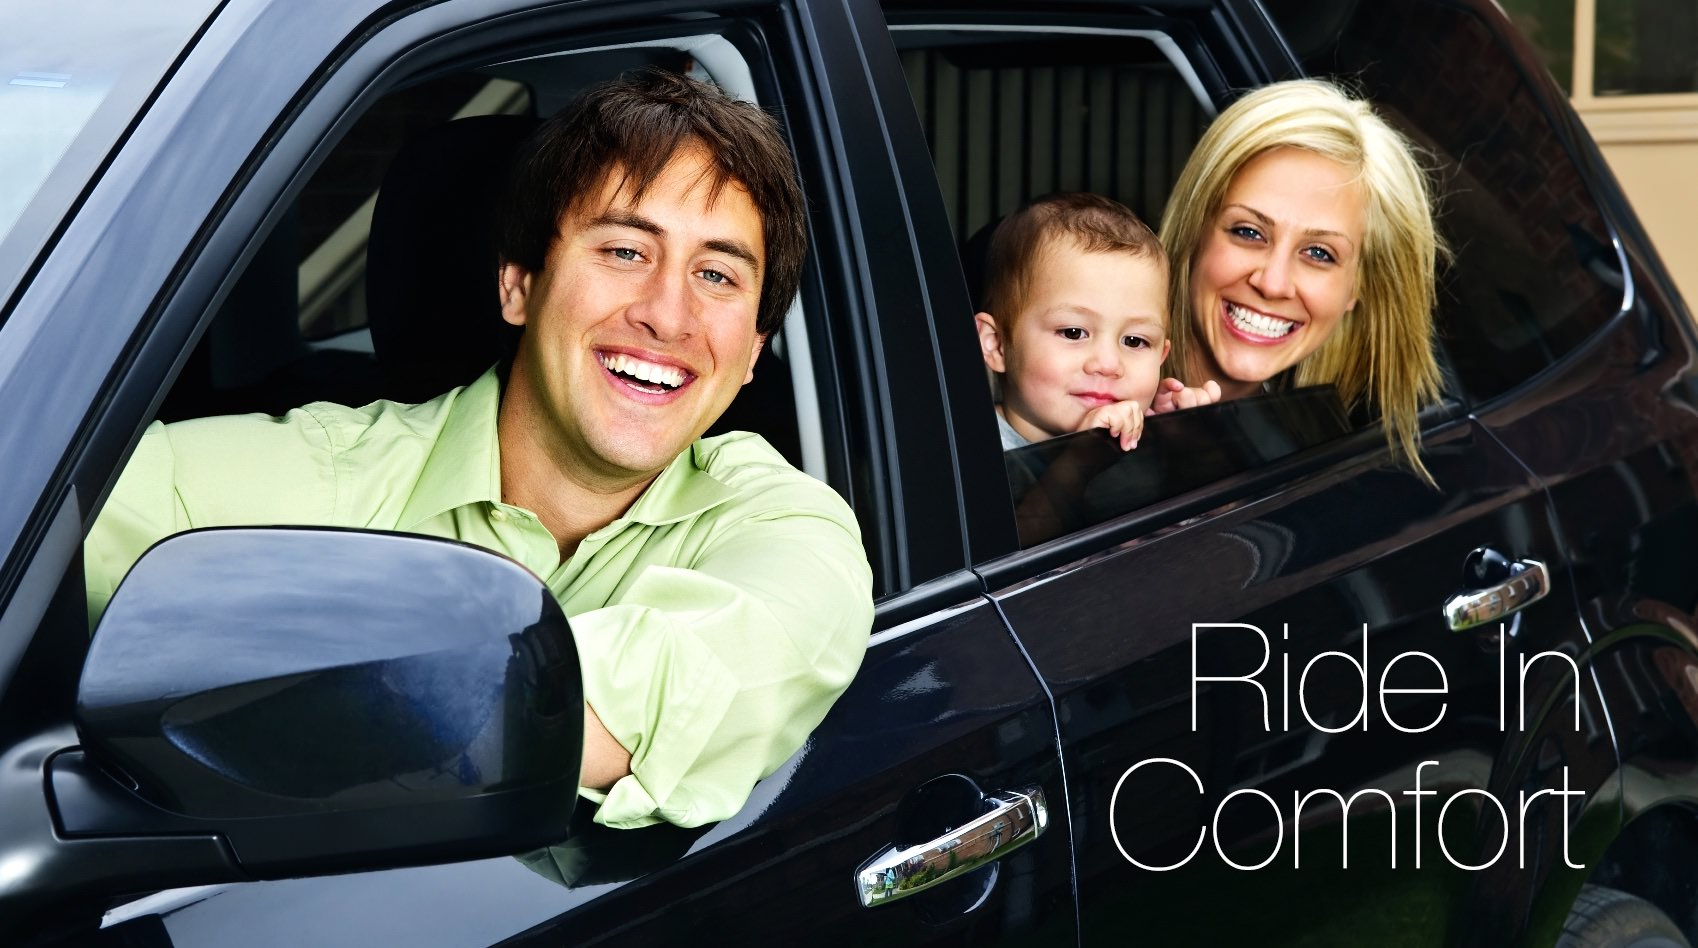 A Family Ride In Comfort